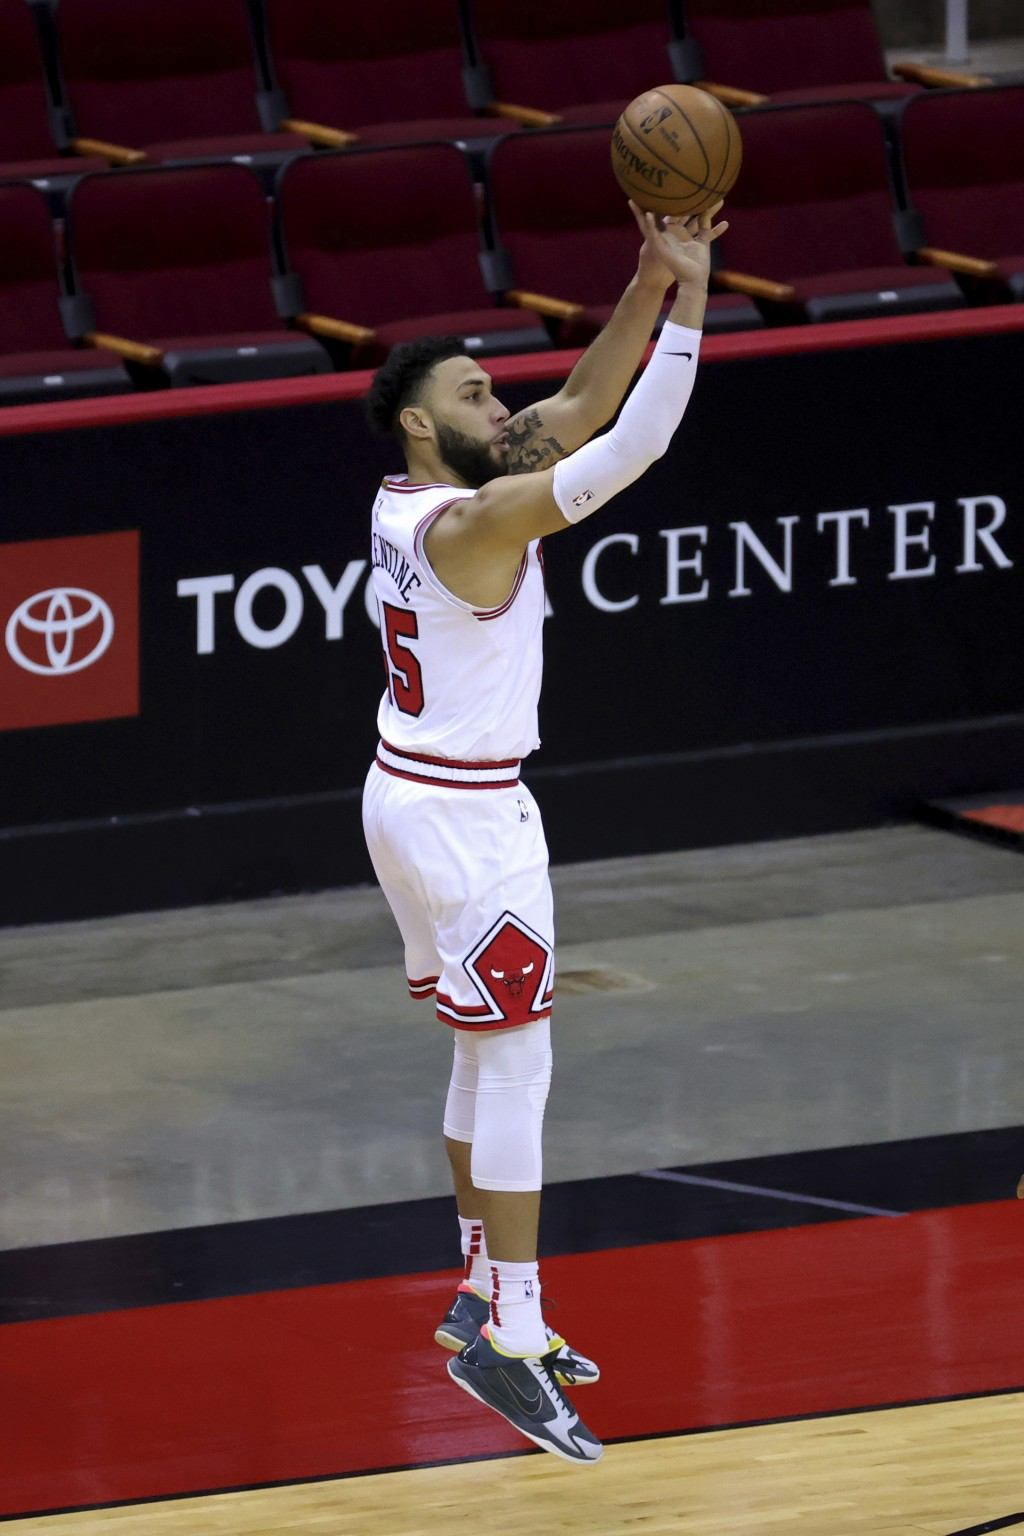 Chicago Bulls' Denzel Valentine shoots a basket against the Houston Rockets during the second quarter of an NBA basketball game Monday, Feb. 22, 2021,...